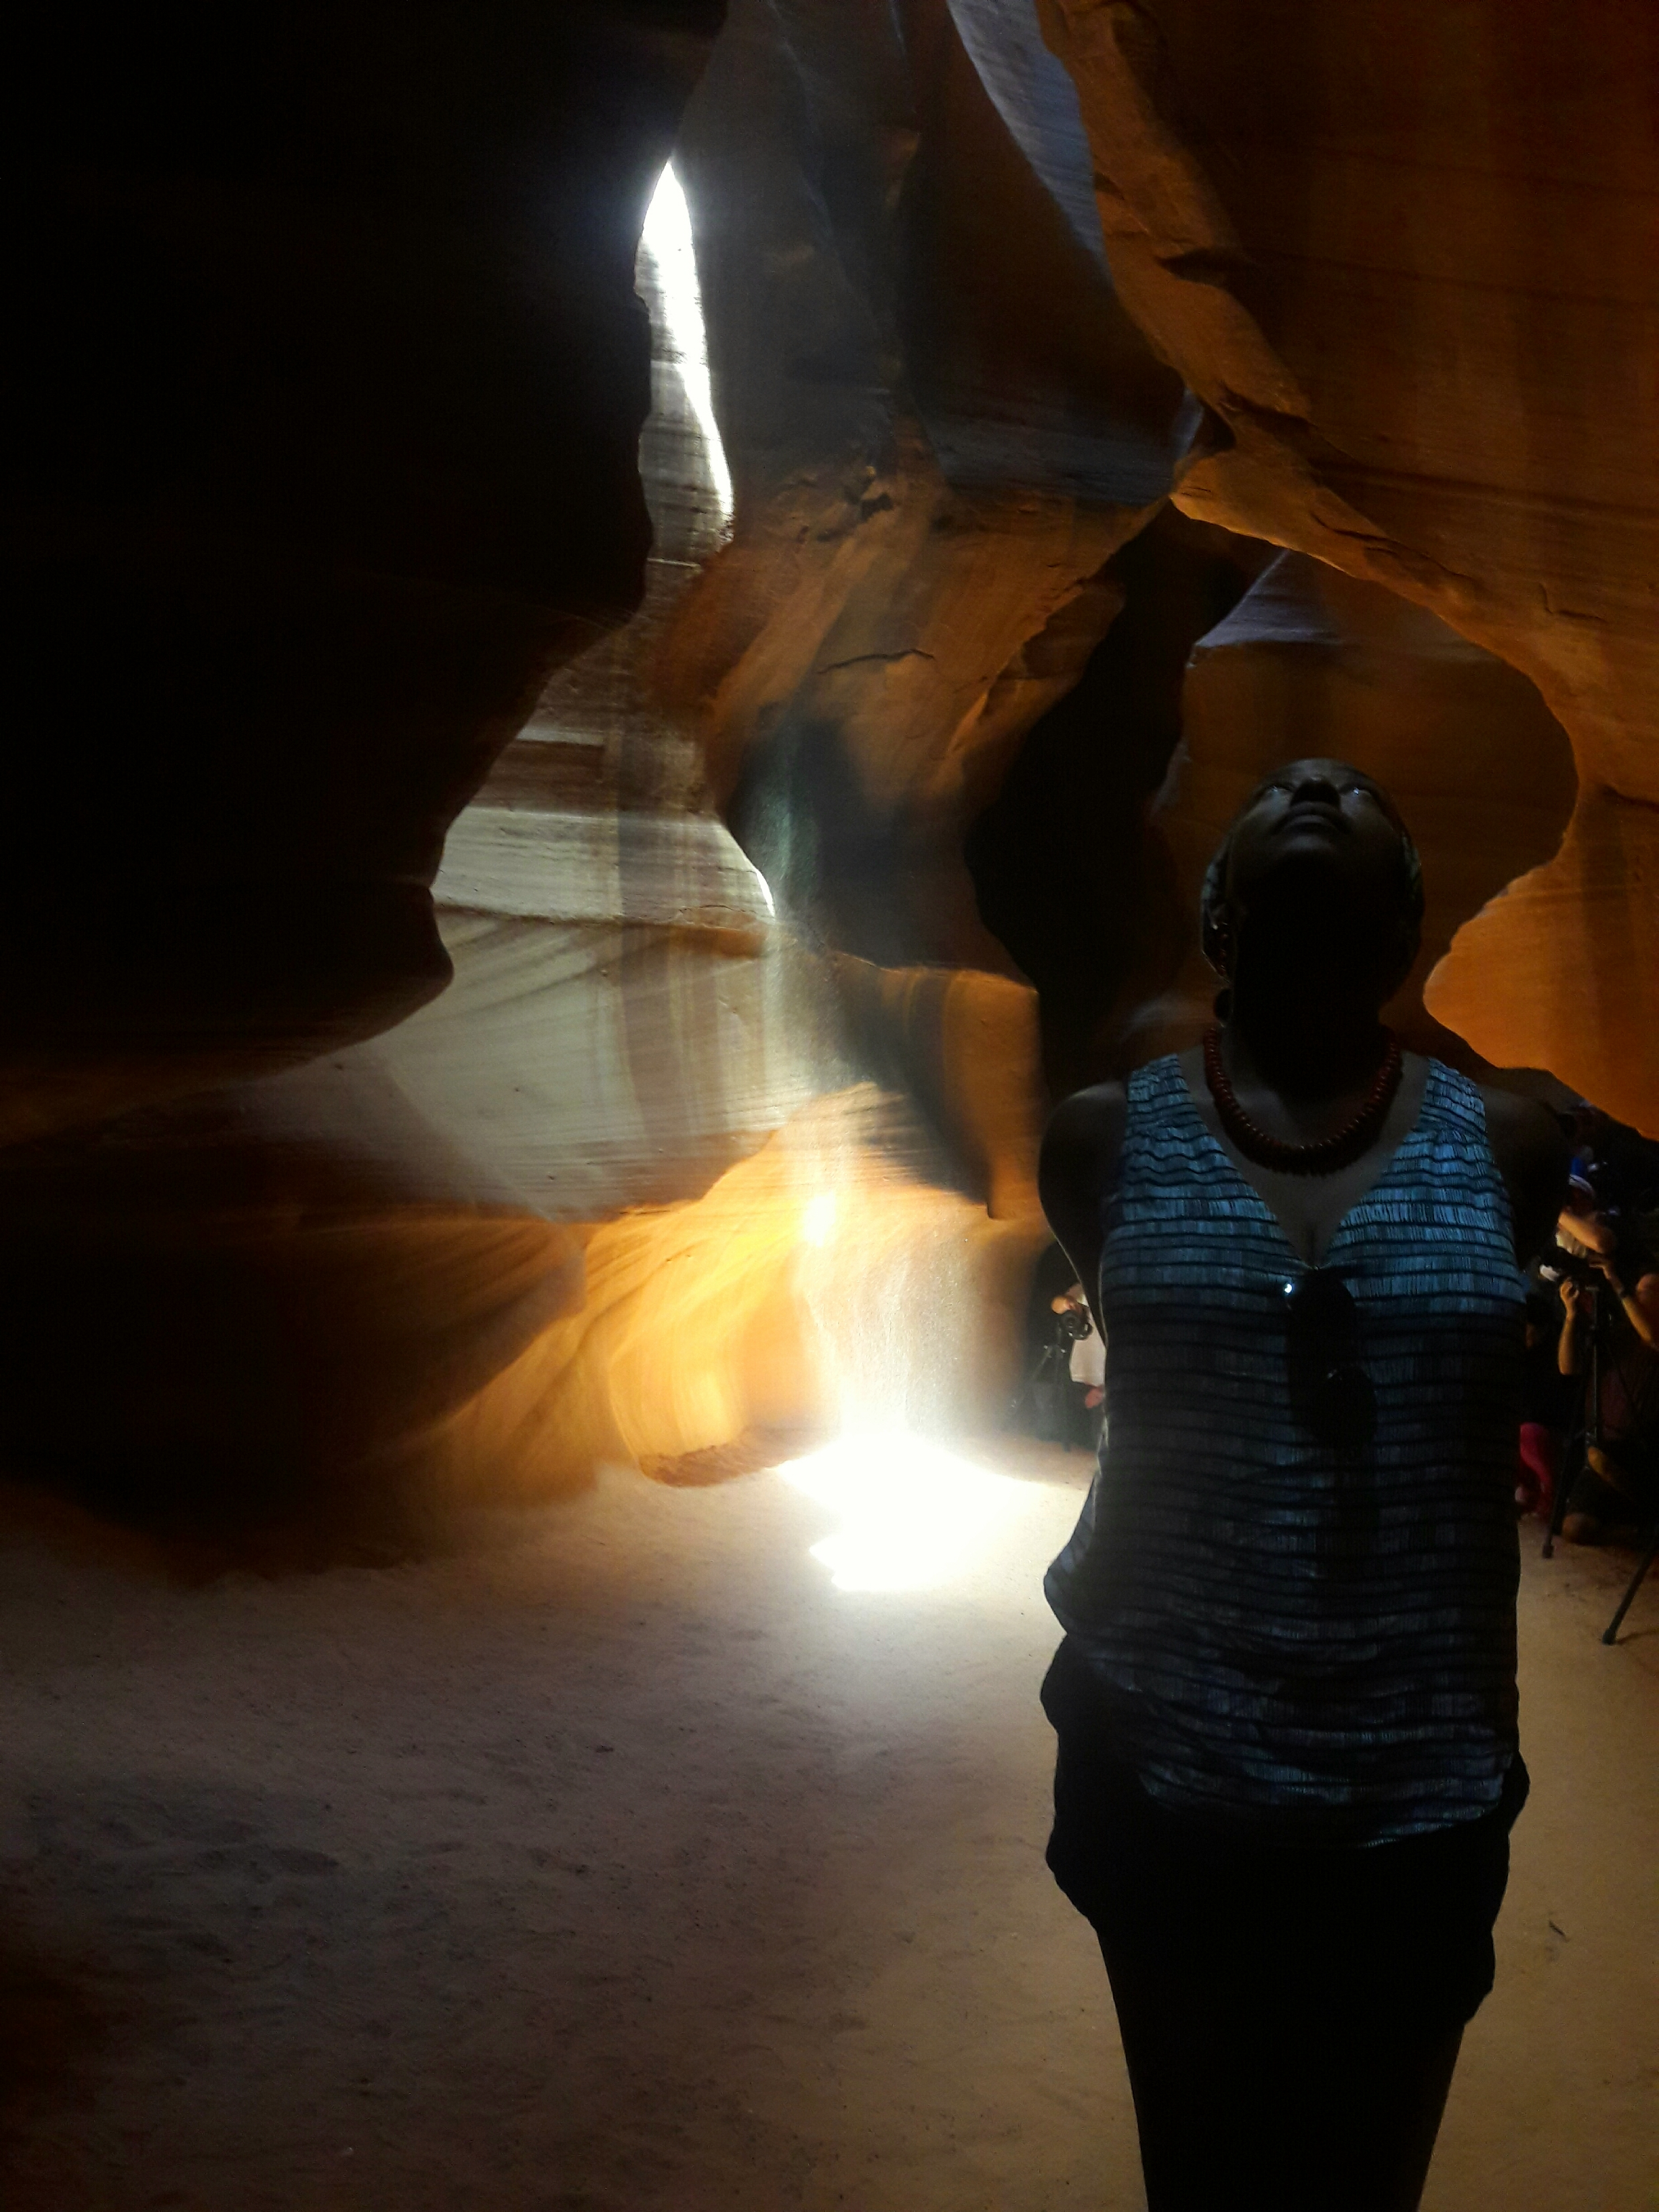 antelope-canyon-recipes-for-travel-3.jpg